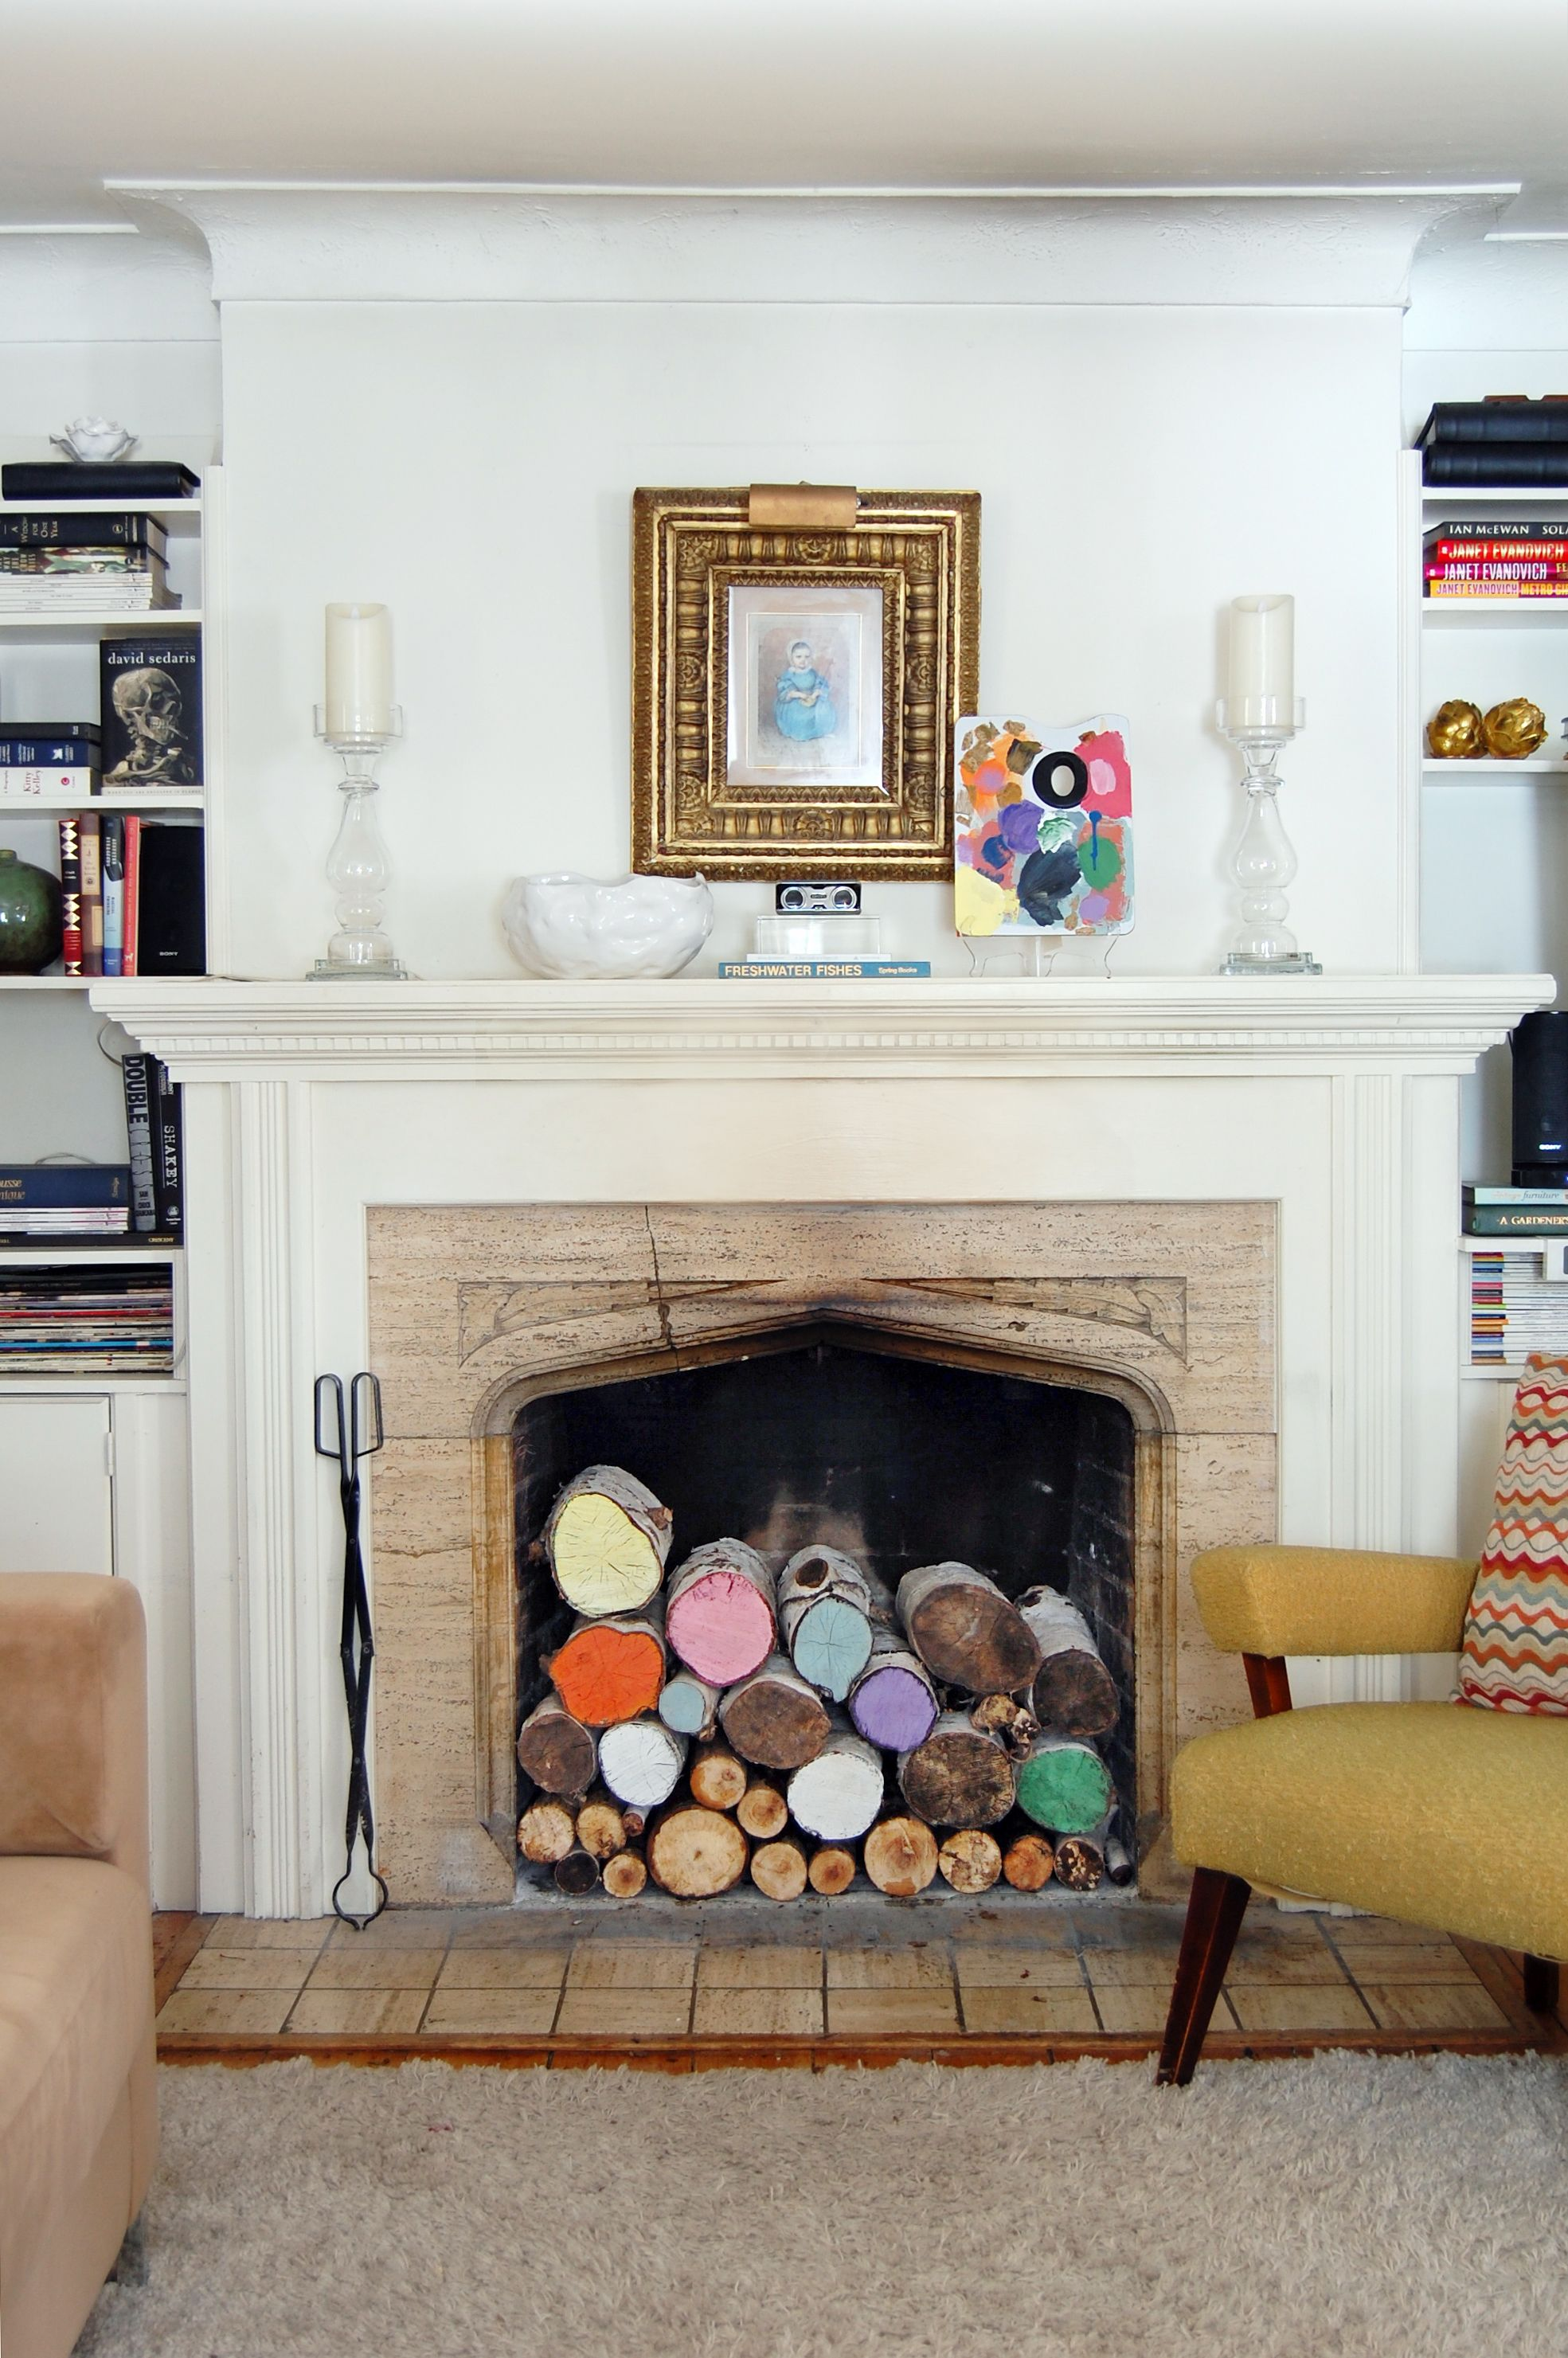 12 Ideas For Decorating A Nonworking Fireplace Home Goods Decor Unused Fireplace Fireplace Filler